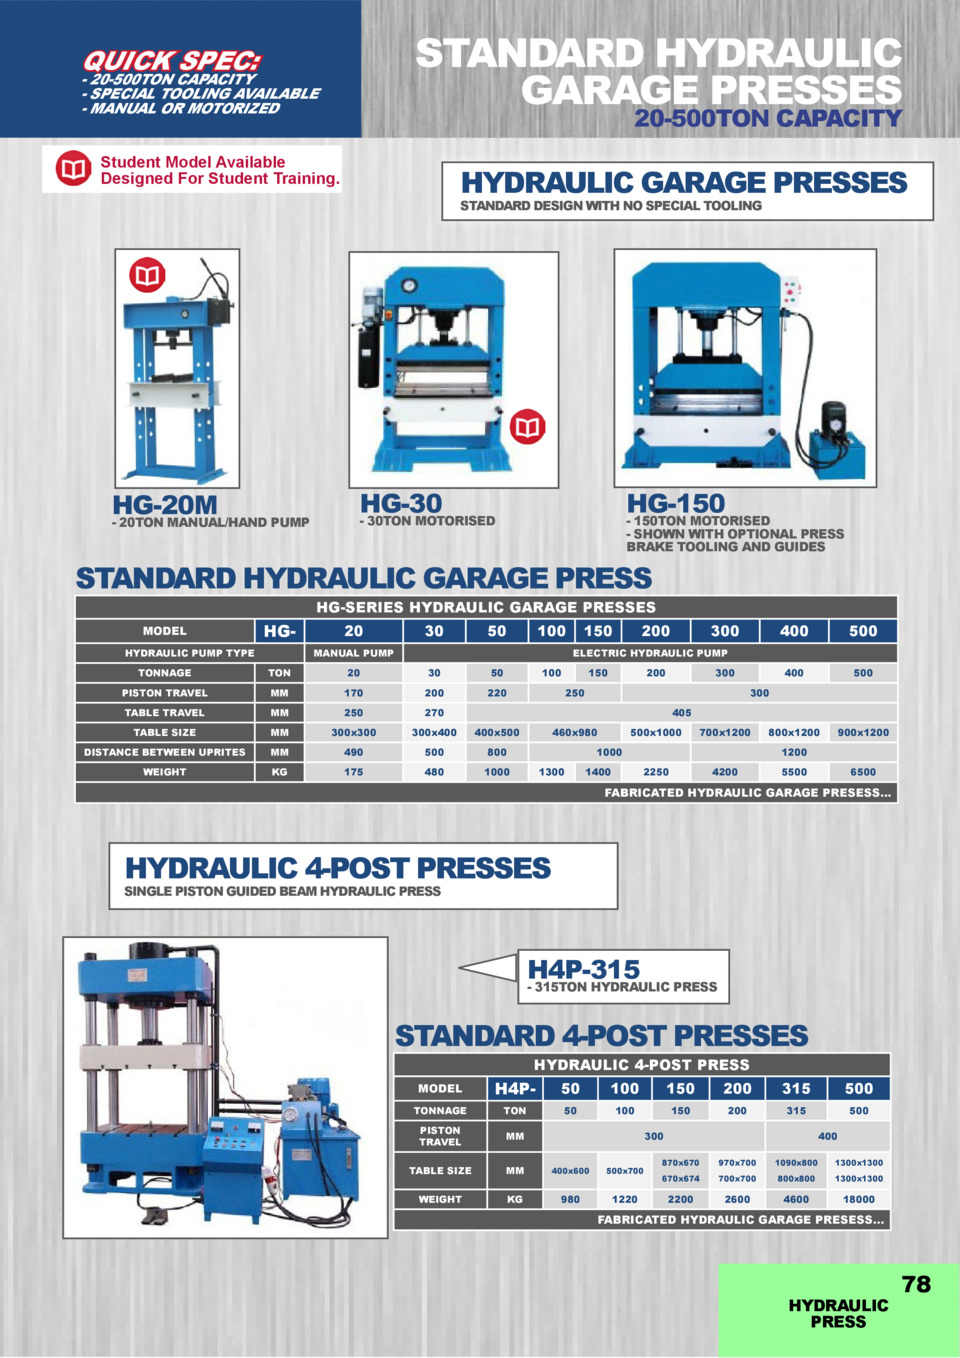 Hydraulic Presses and Ironworkers Catalogue by Standard